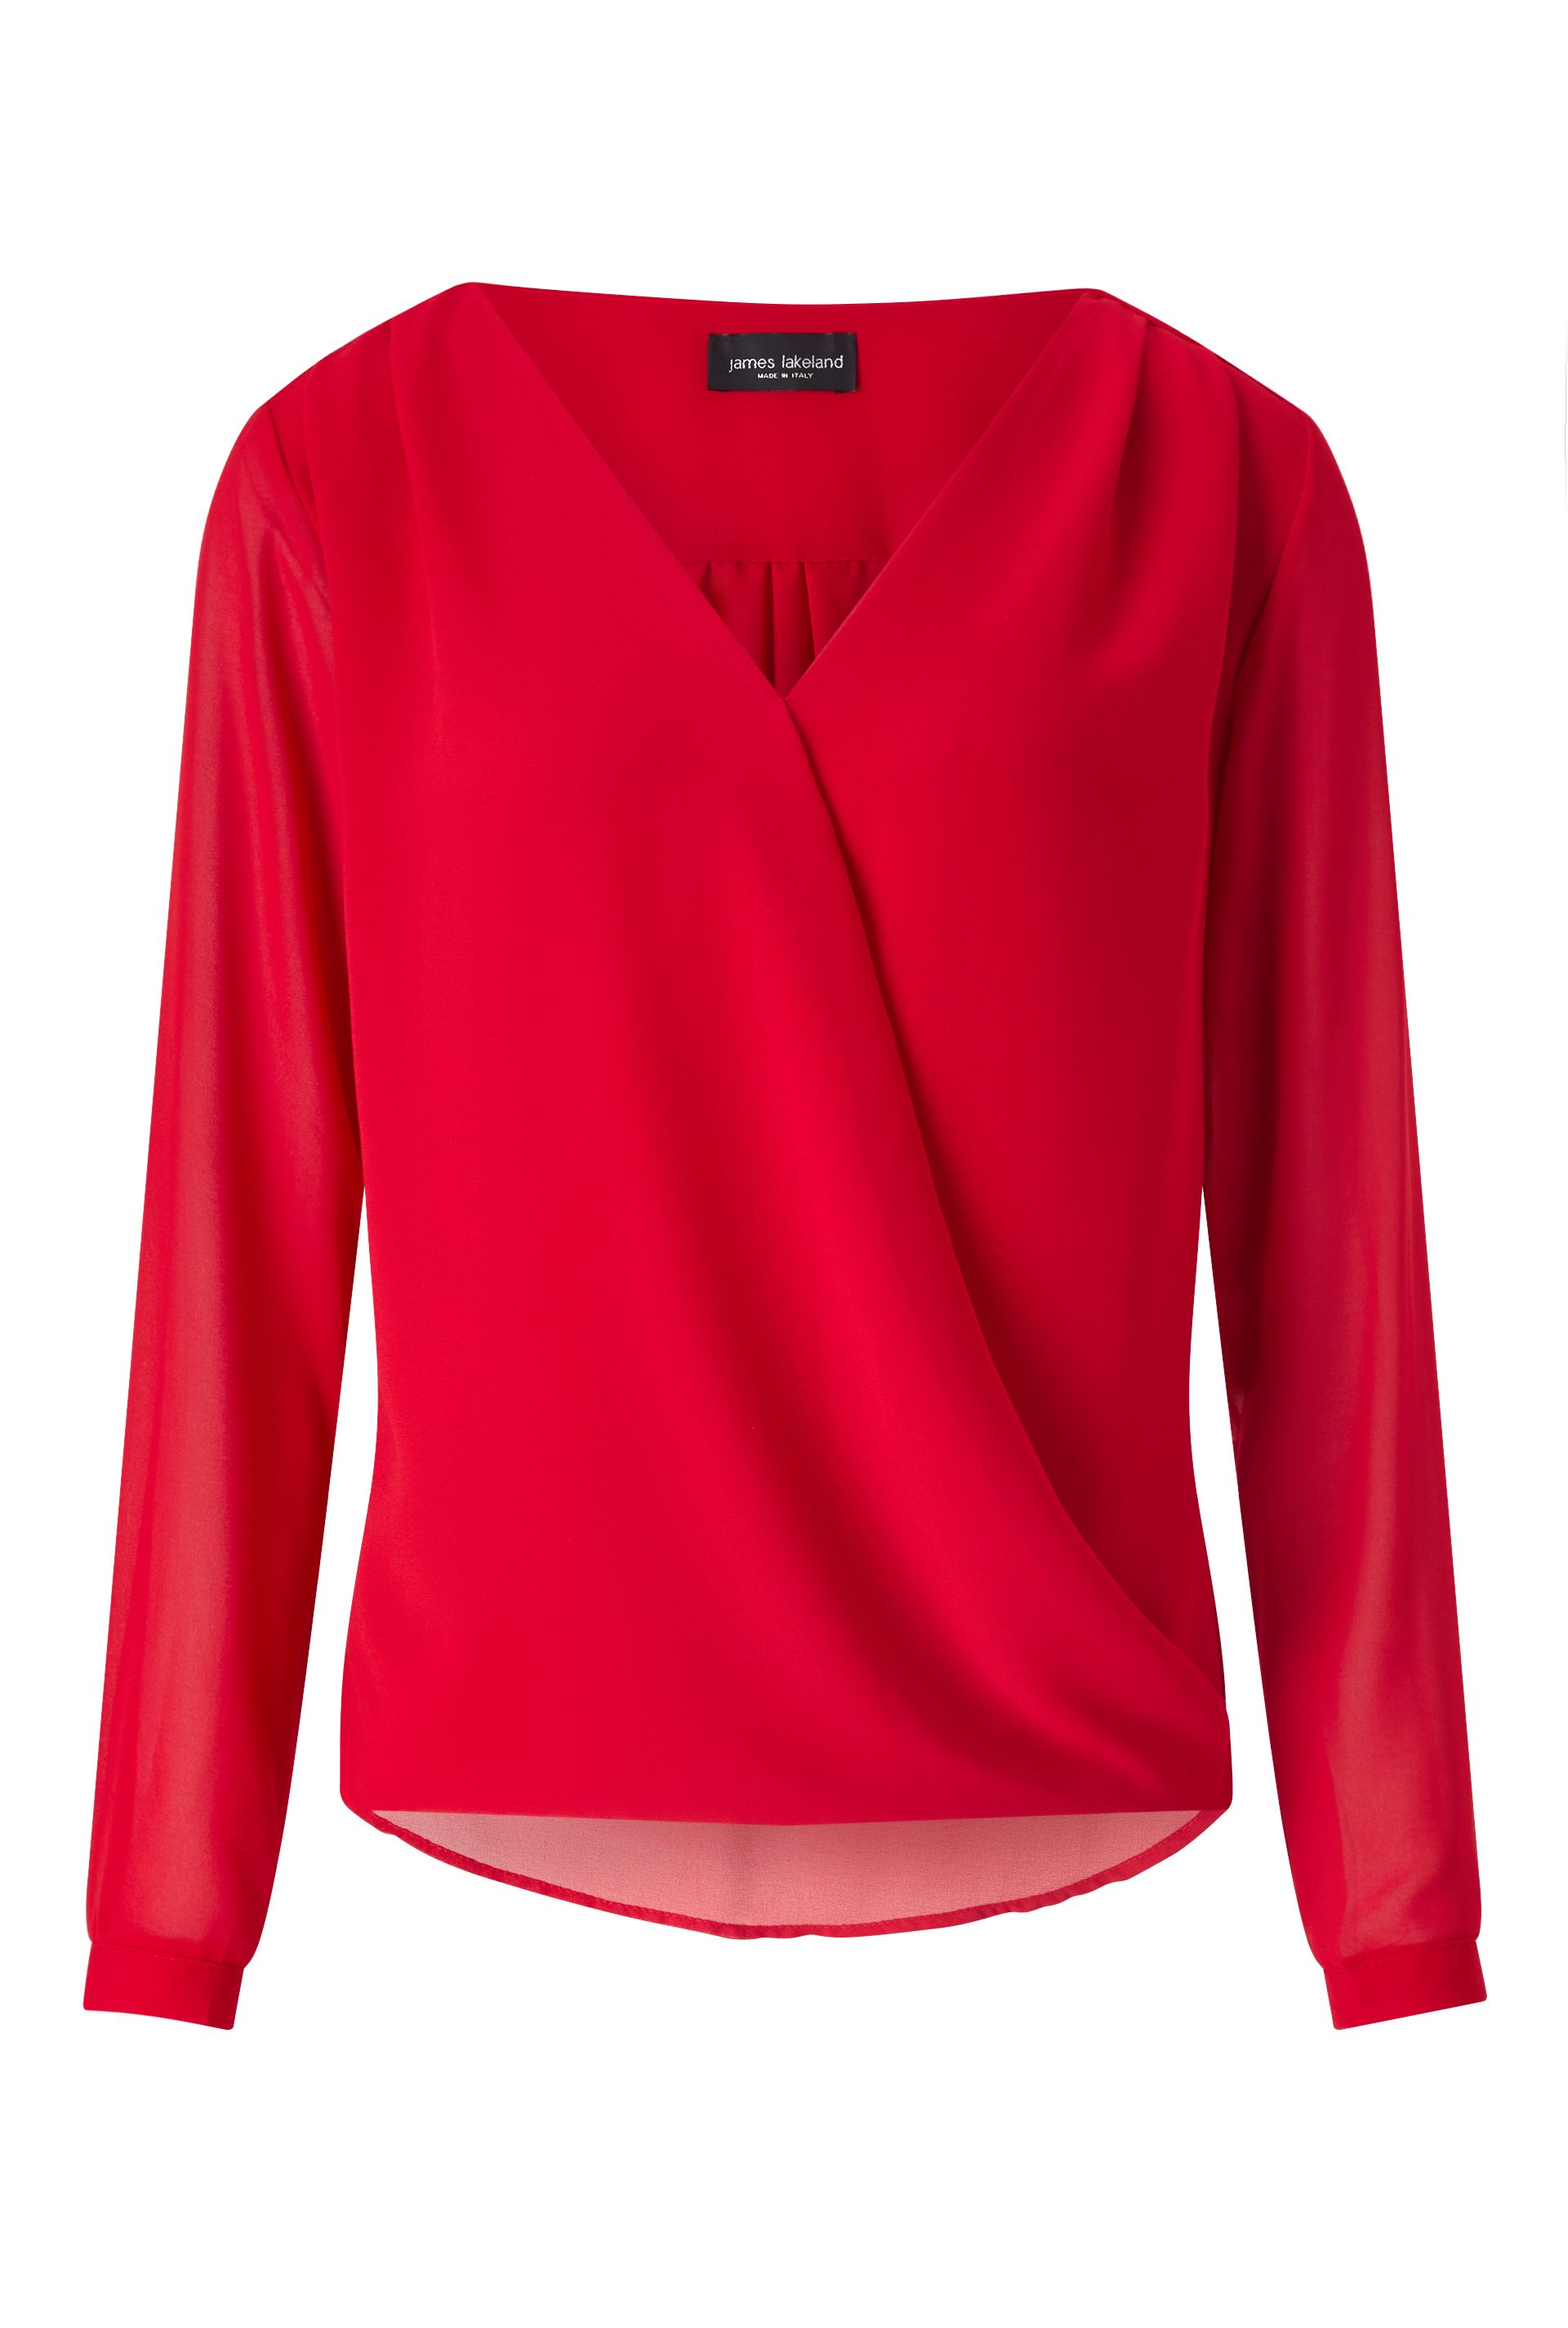 James Lakeland Crossover Blouse, Red